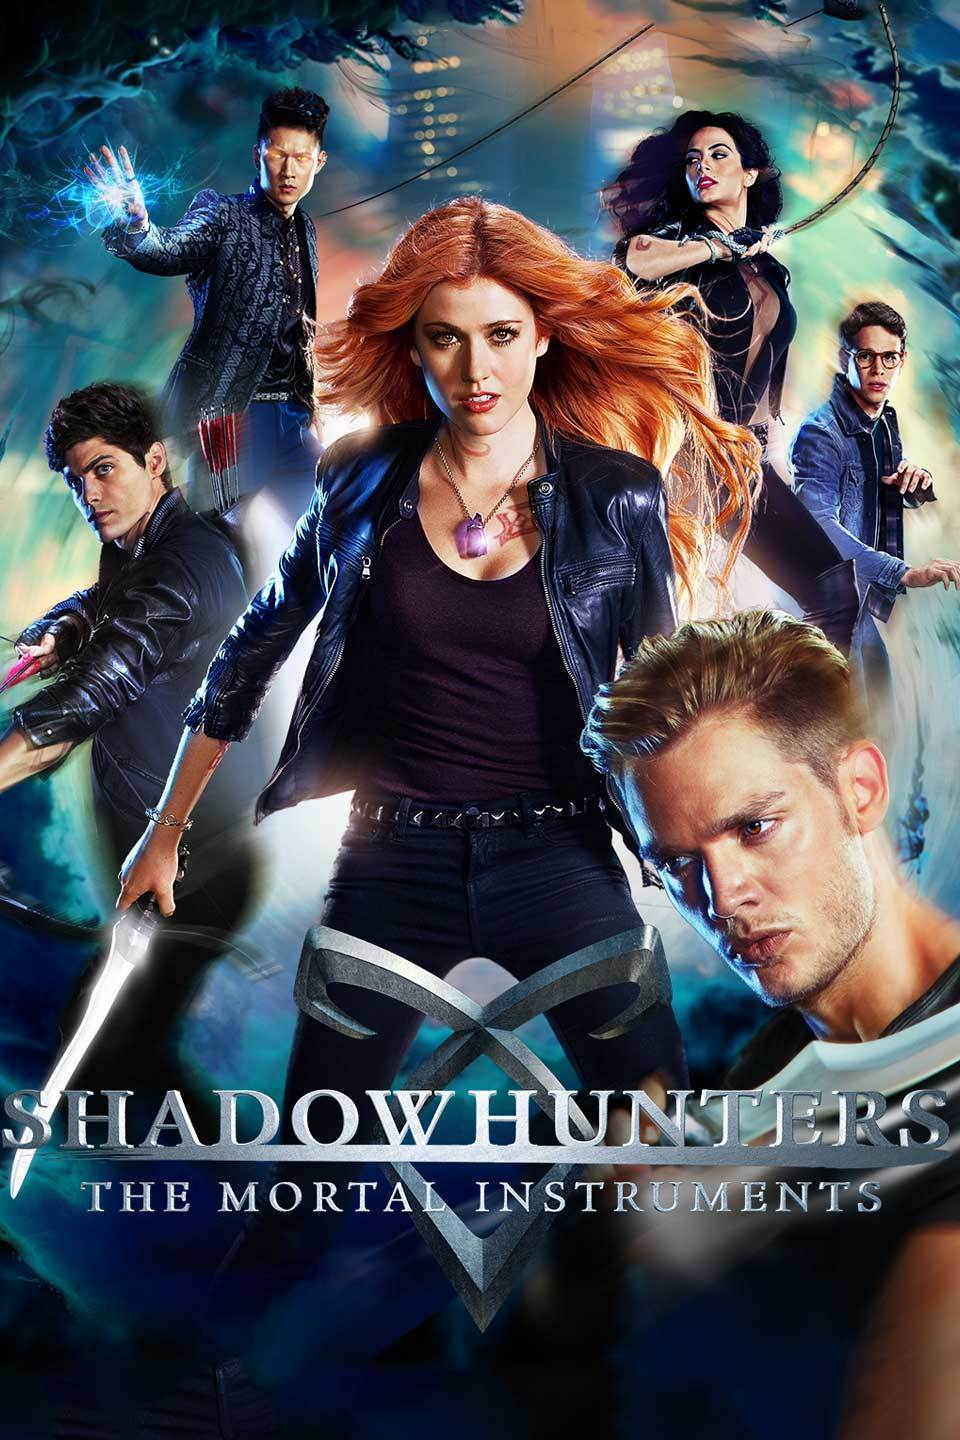 shadow hunters jace and clary meet